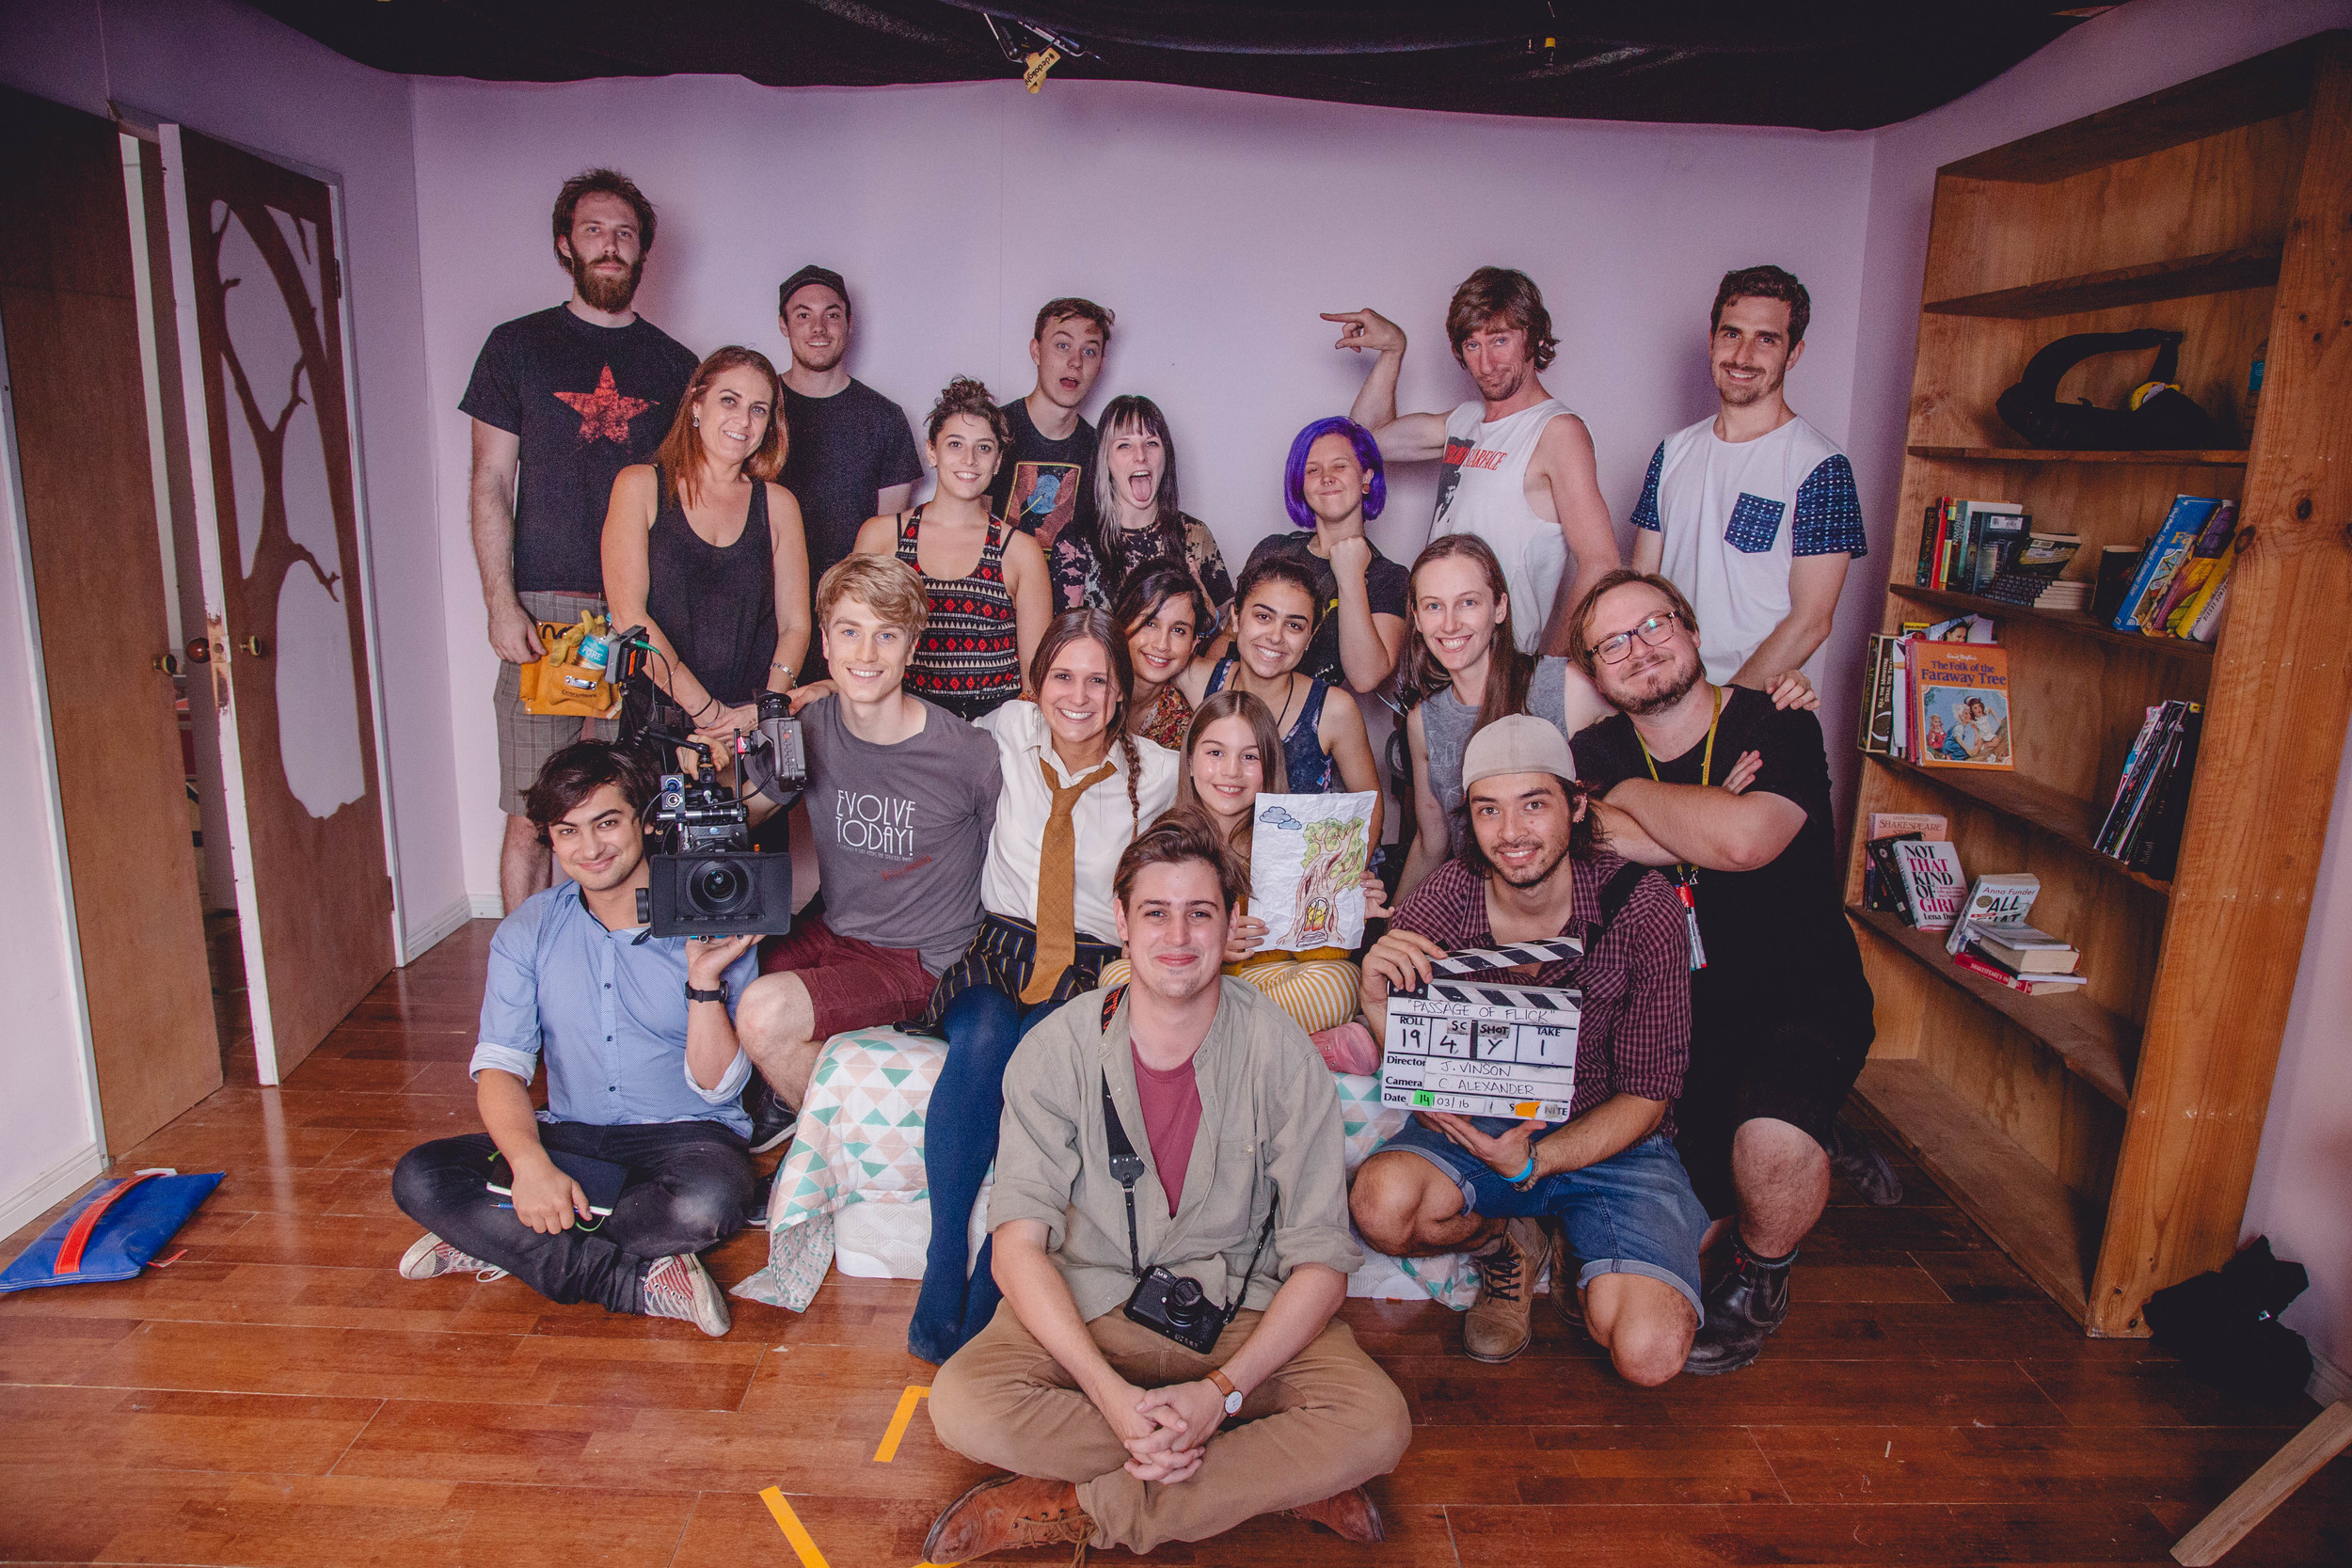 The Passage of Flick Cast and Crew!